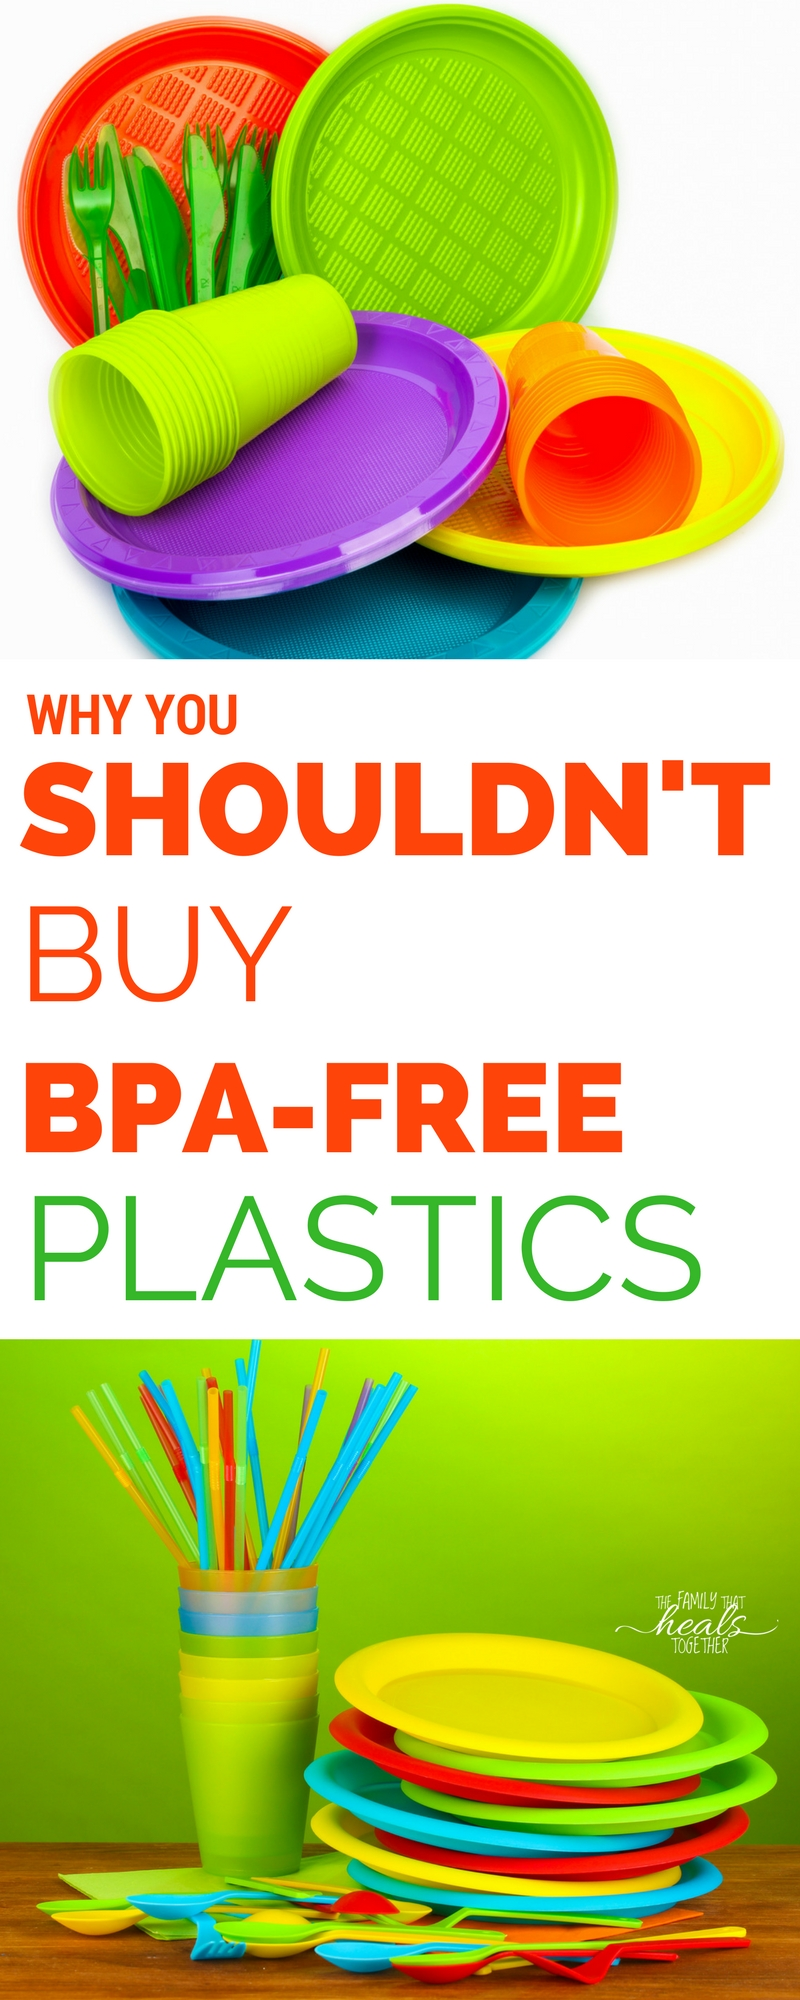 You know you should avoid BPA, but did you know BPA free chemicals are no better? Learn the dangers and what products you should be buying instead from The Family That Heals Together